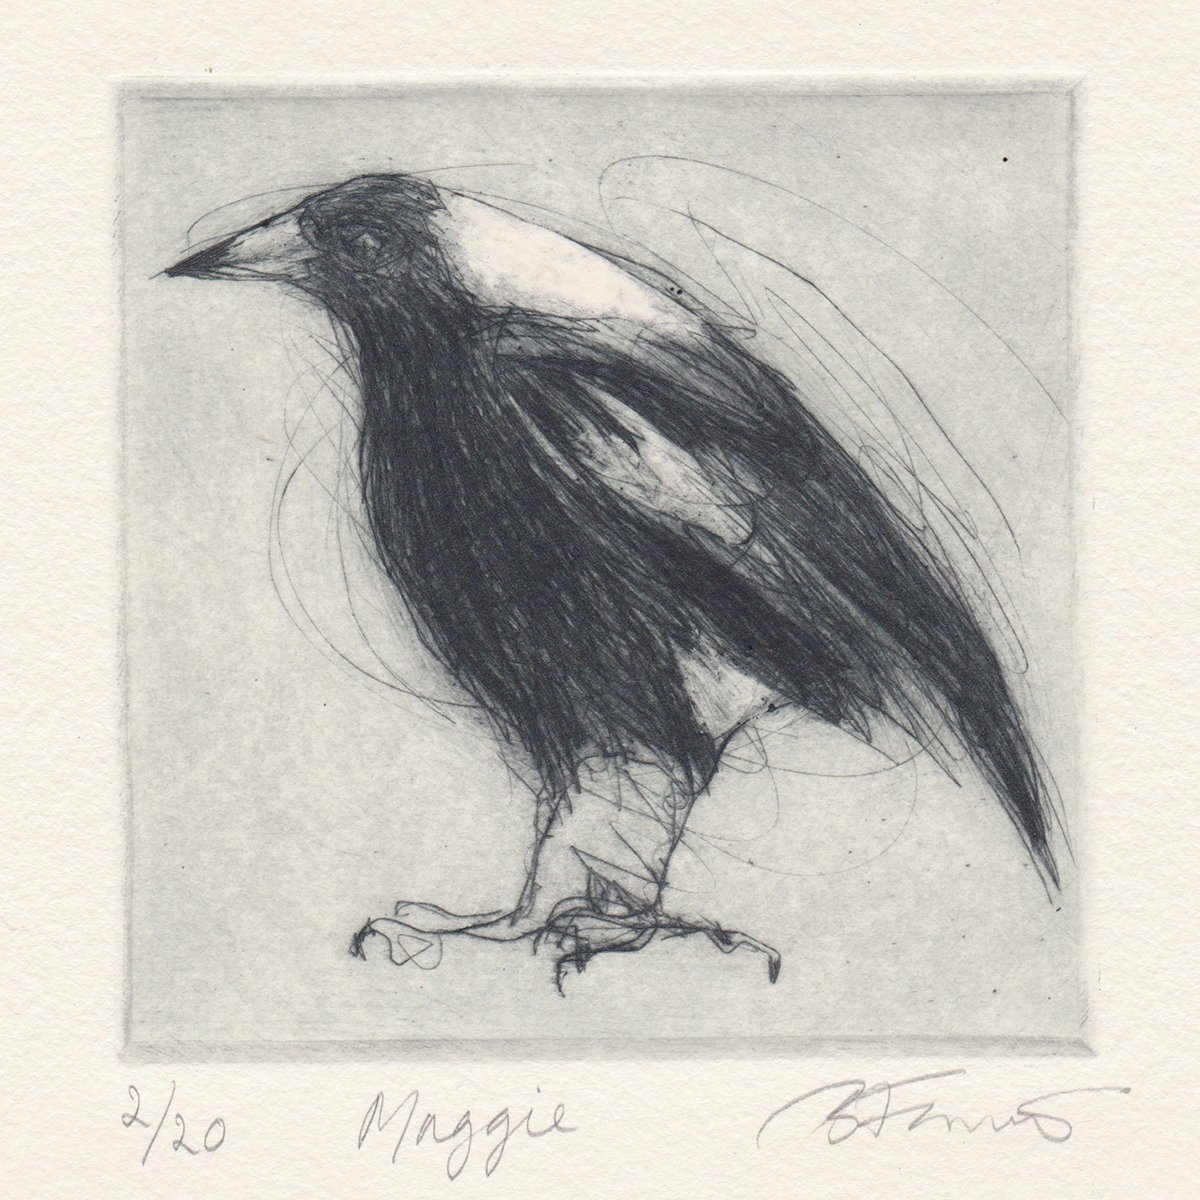 New etching - Maggie